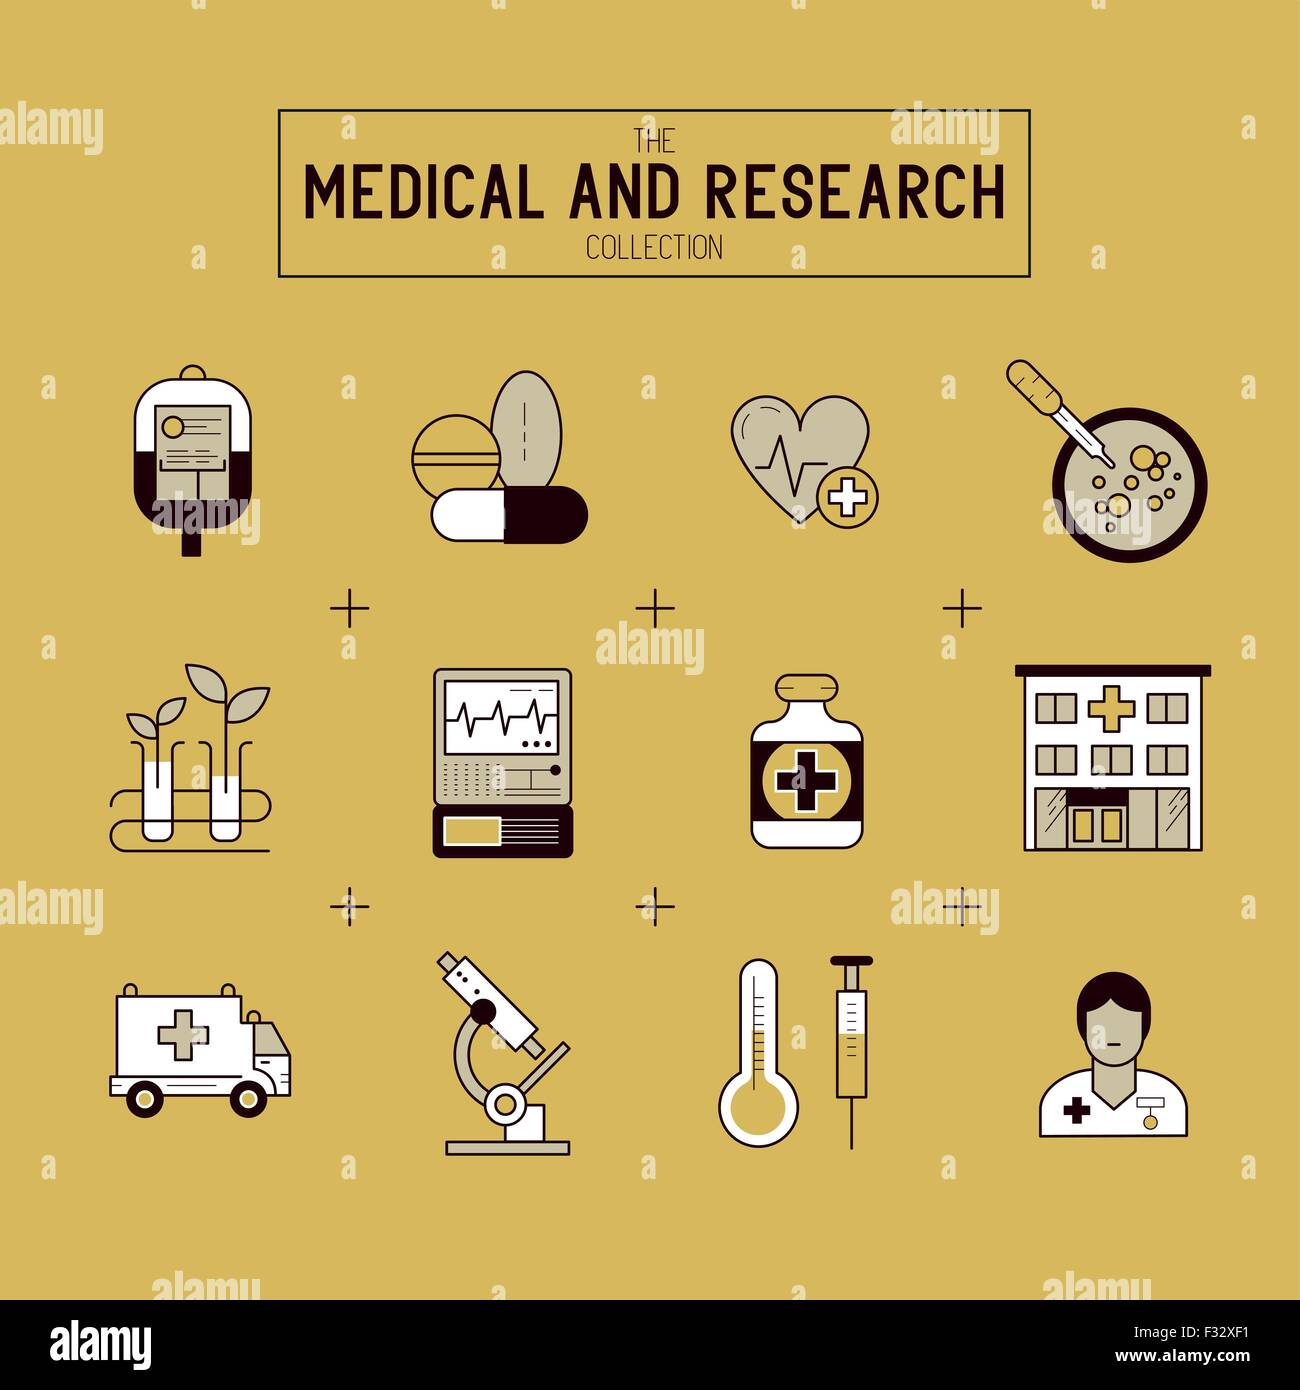 Medical and Research Icon Set. A collection of gold medical icons including, equipment, people and medical tools. - Stock Image